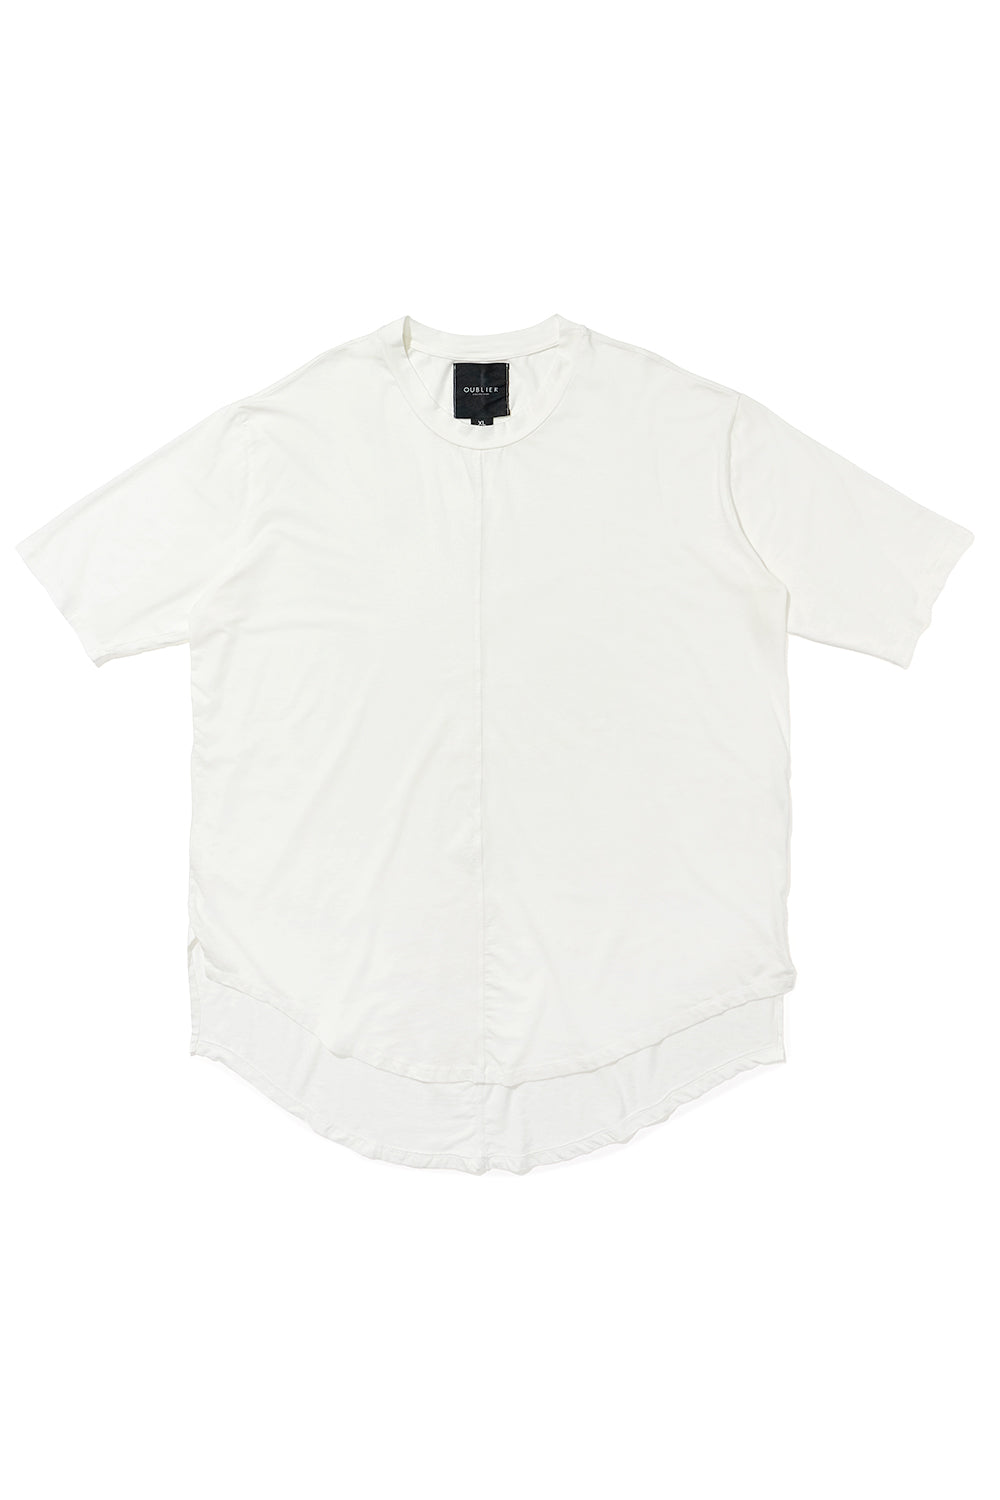 NATURAL BILEVEL T-SHIRT